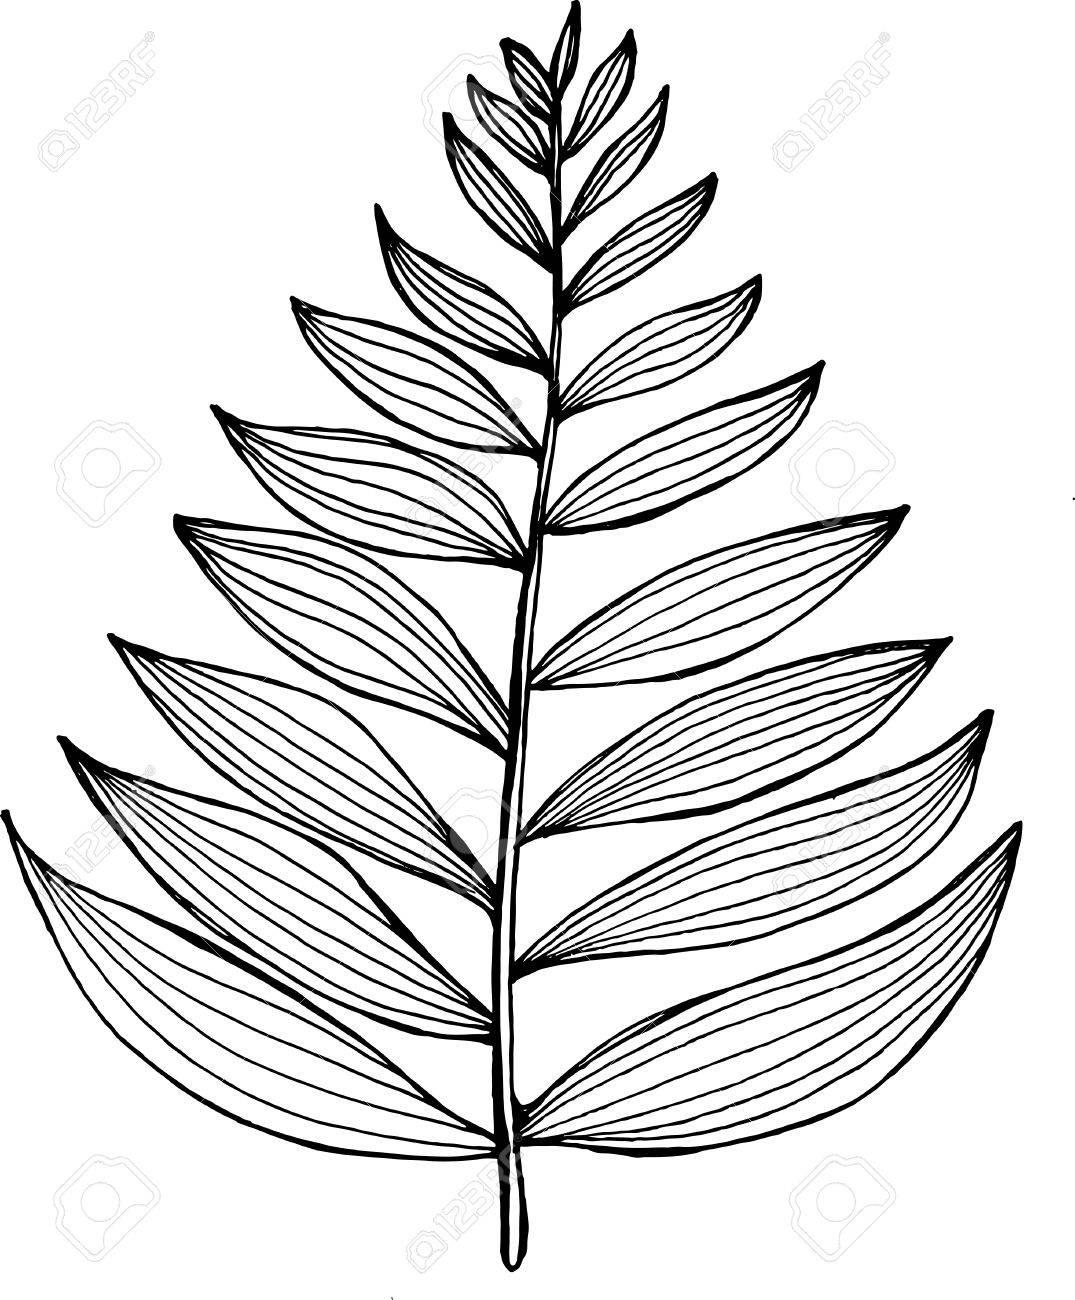 Black and white picture of a fractal leaf. Branch of a fern.